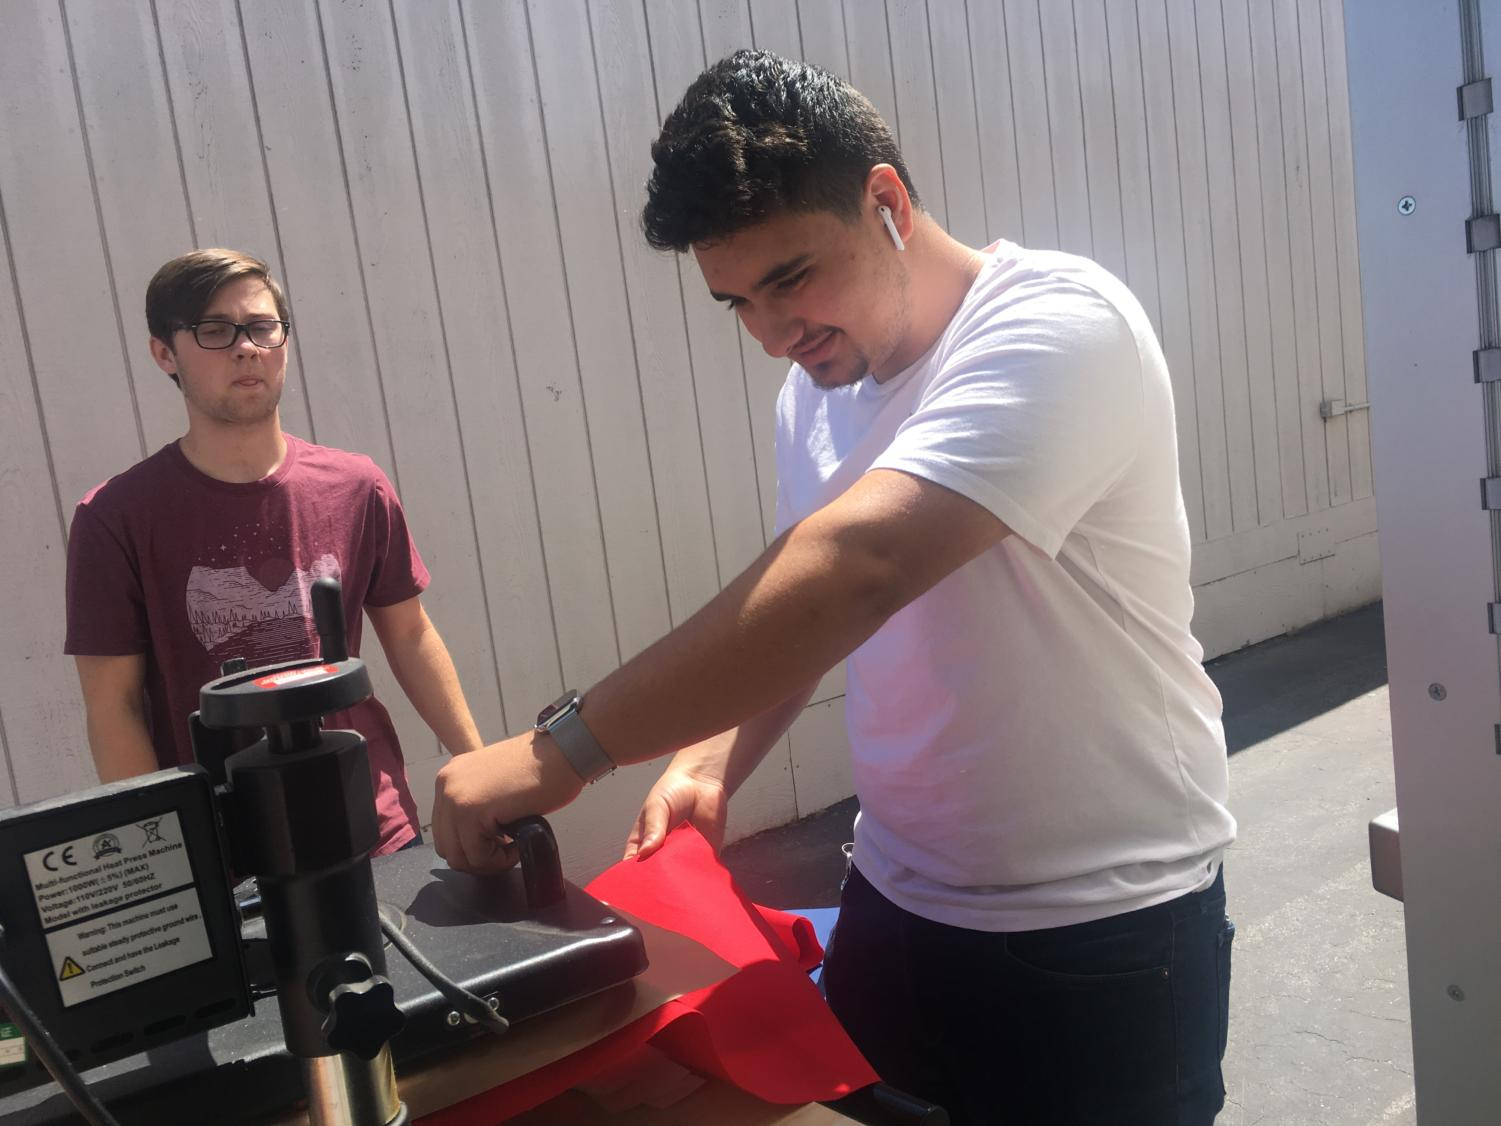 Jonny Samaan helping Justin Terryberry with the T-Shirt Press.